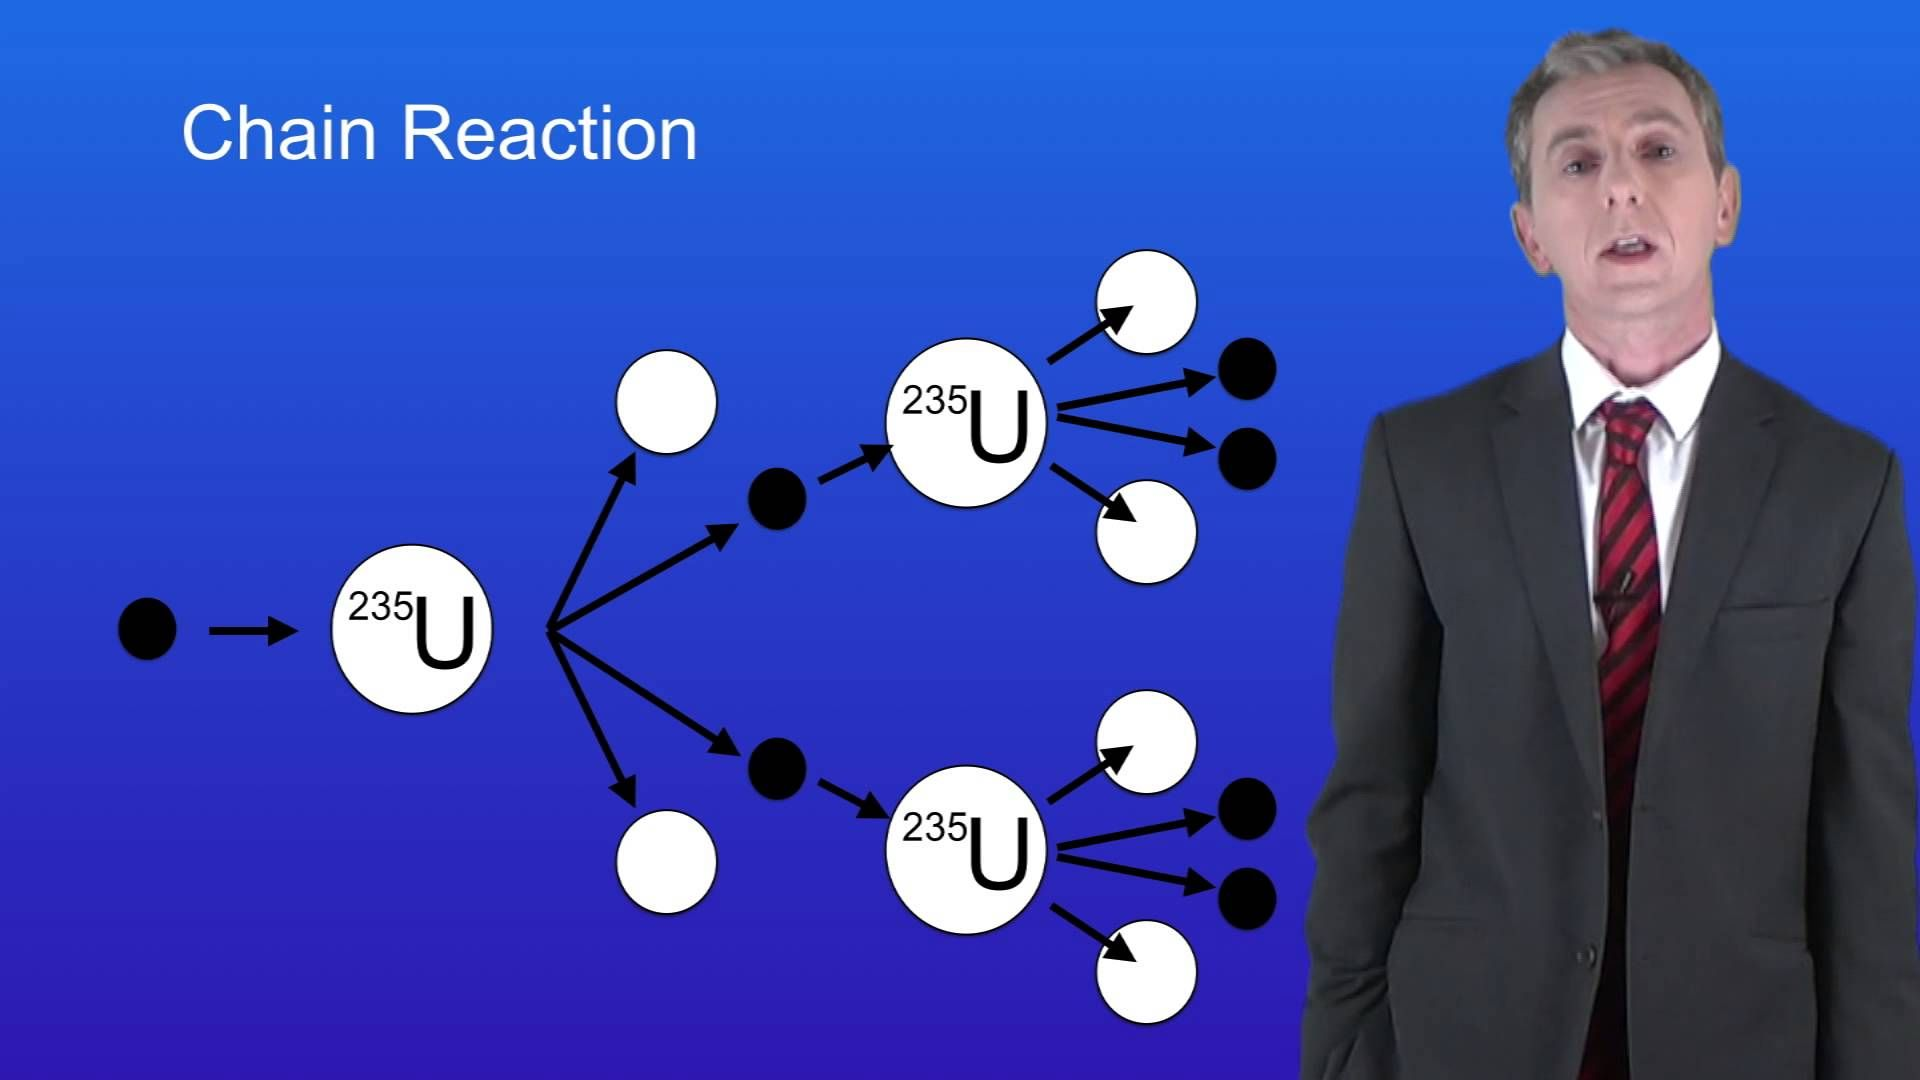 Application Of Nuclear Fission And Fusion